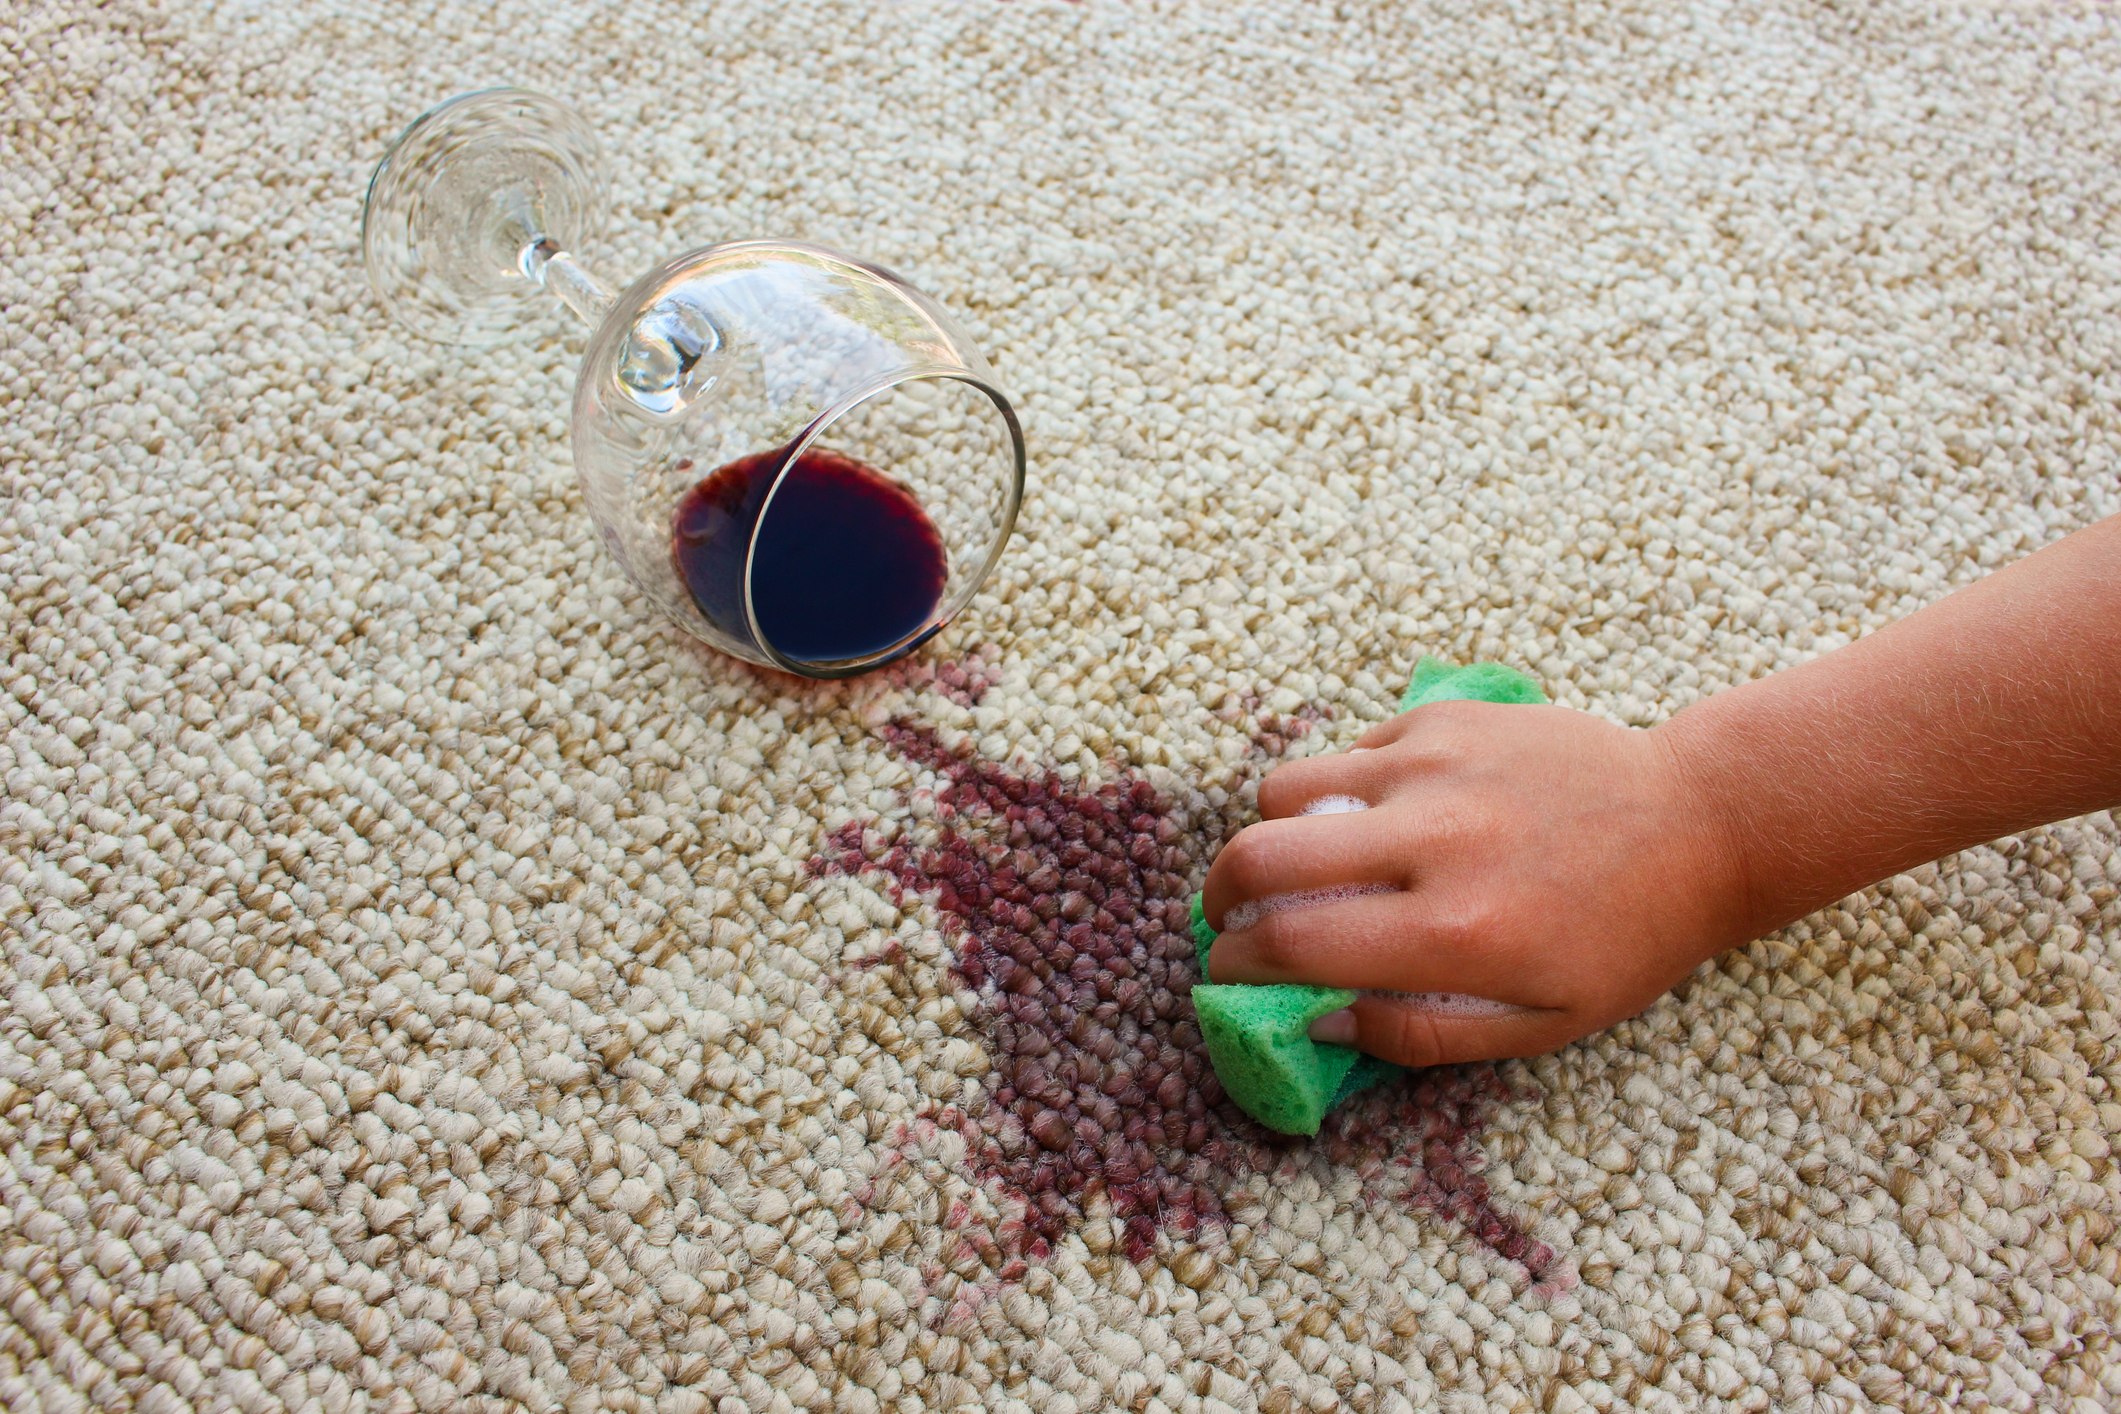 Red wine spillage on carpet